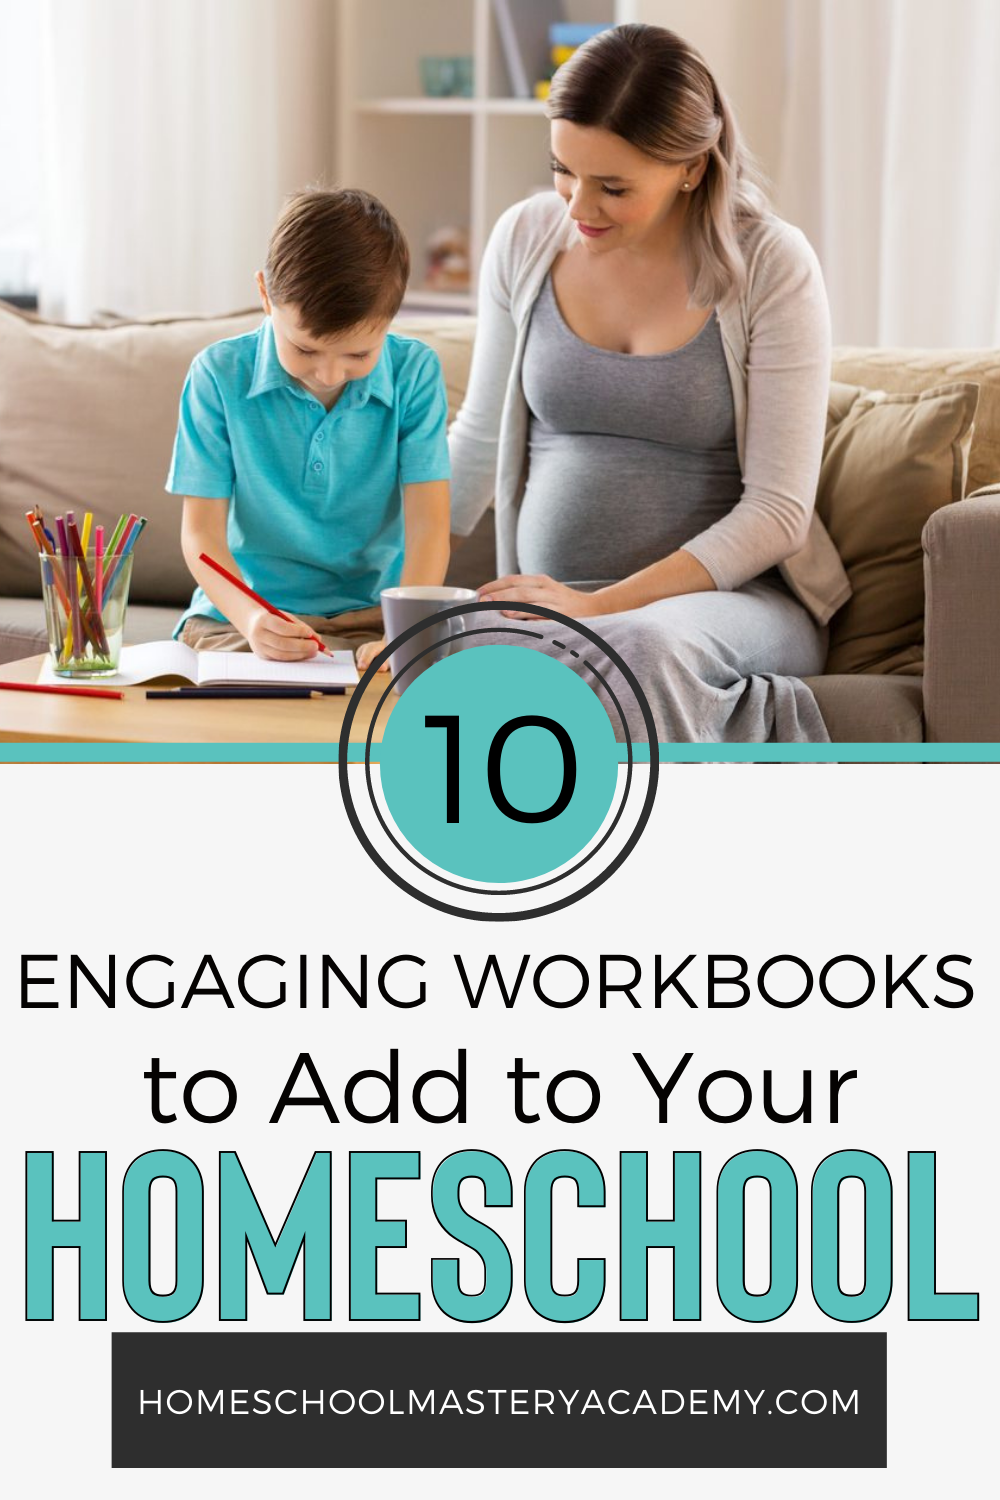 Homeschool Workbooks worth taking a look at. Workbooks can be a great addition to your homeschool day. #homeschool #workbooks #homeschooling #homeschoolcurriculum